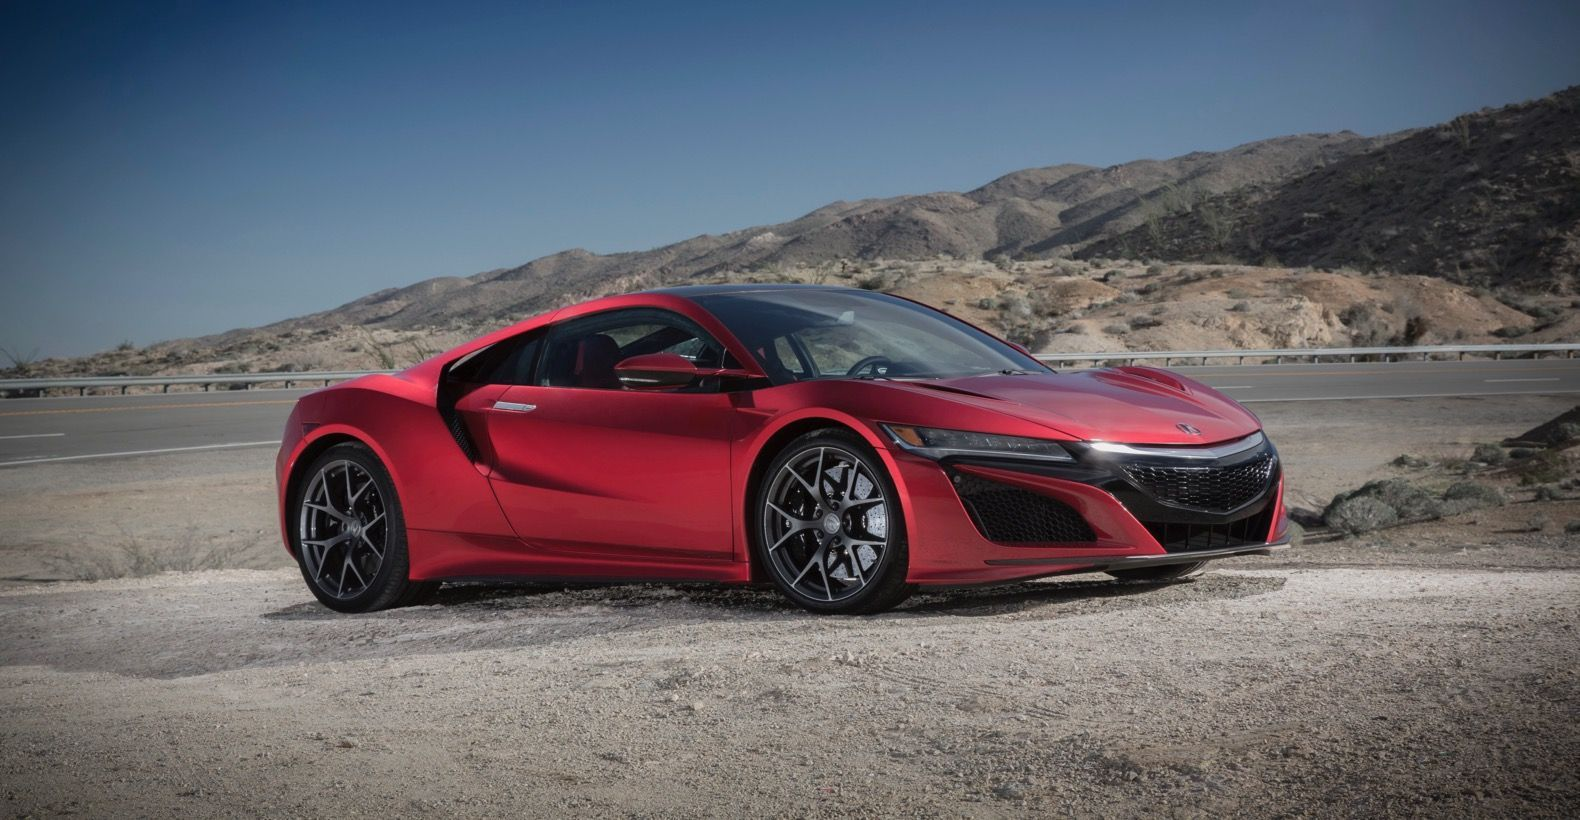 2020 Acura Nsxs Price Design And Review Acura Coupe Acura Nsx Nsx